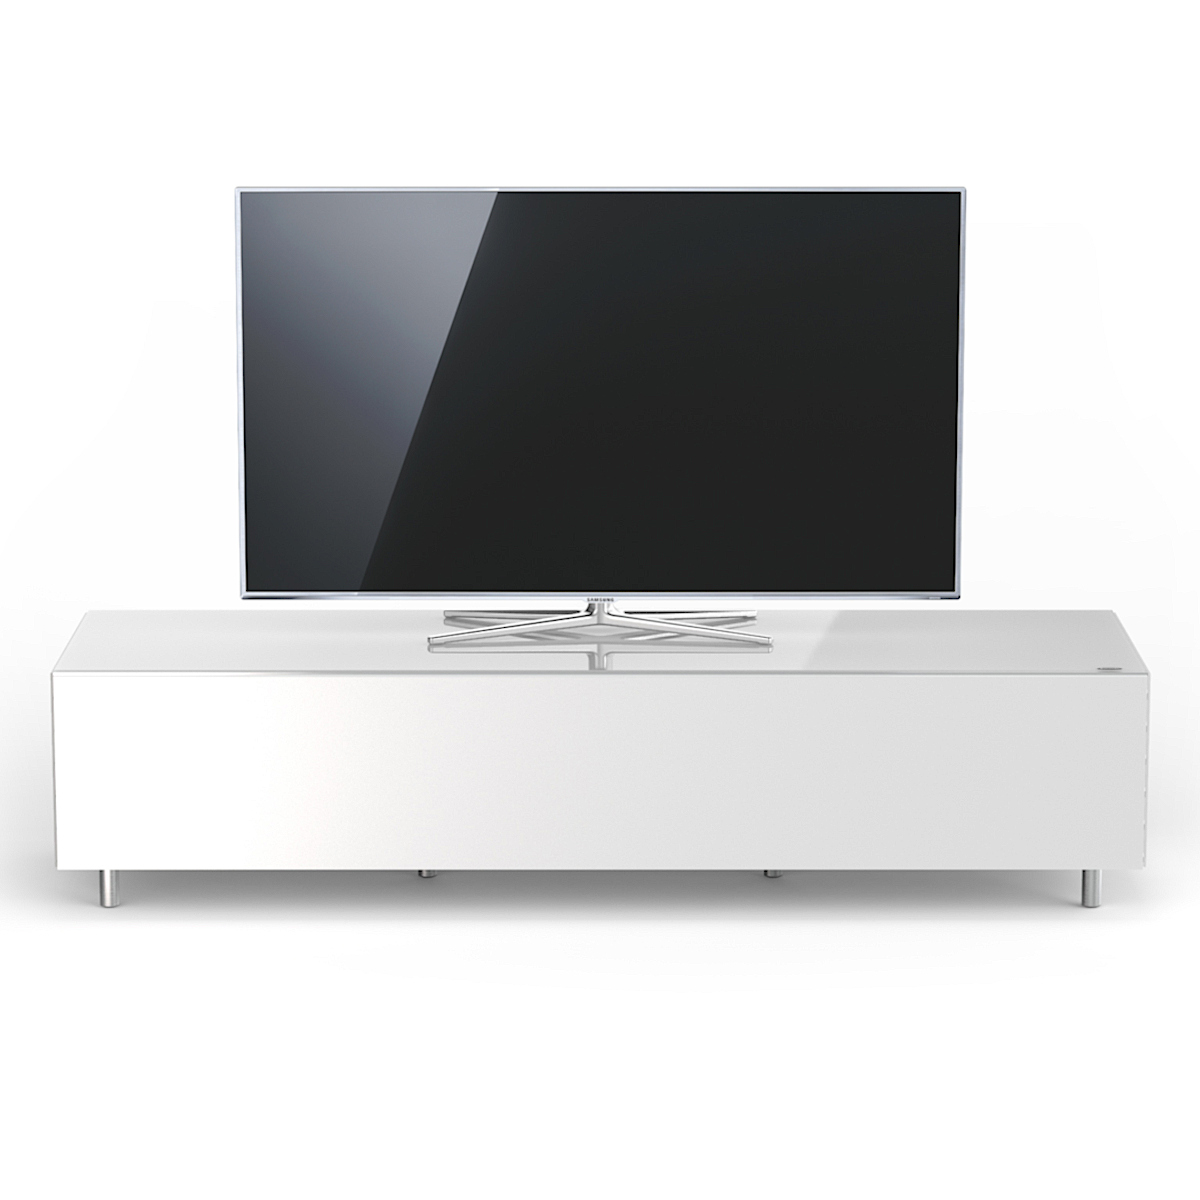 verdeckte Kabelführung, TV Lowboard, TV Sideboard, TV Regal, TV Möbel, TV Schrank, TV Rack, Phonoschrank, verglast, Klappe, Just Racks